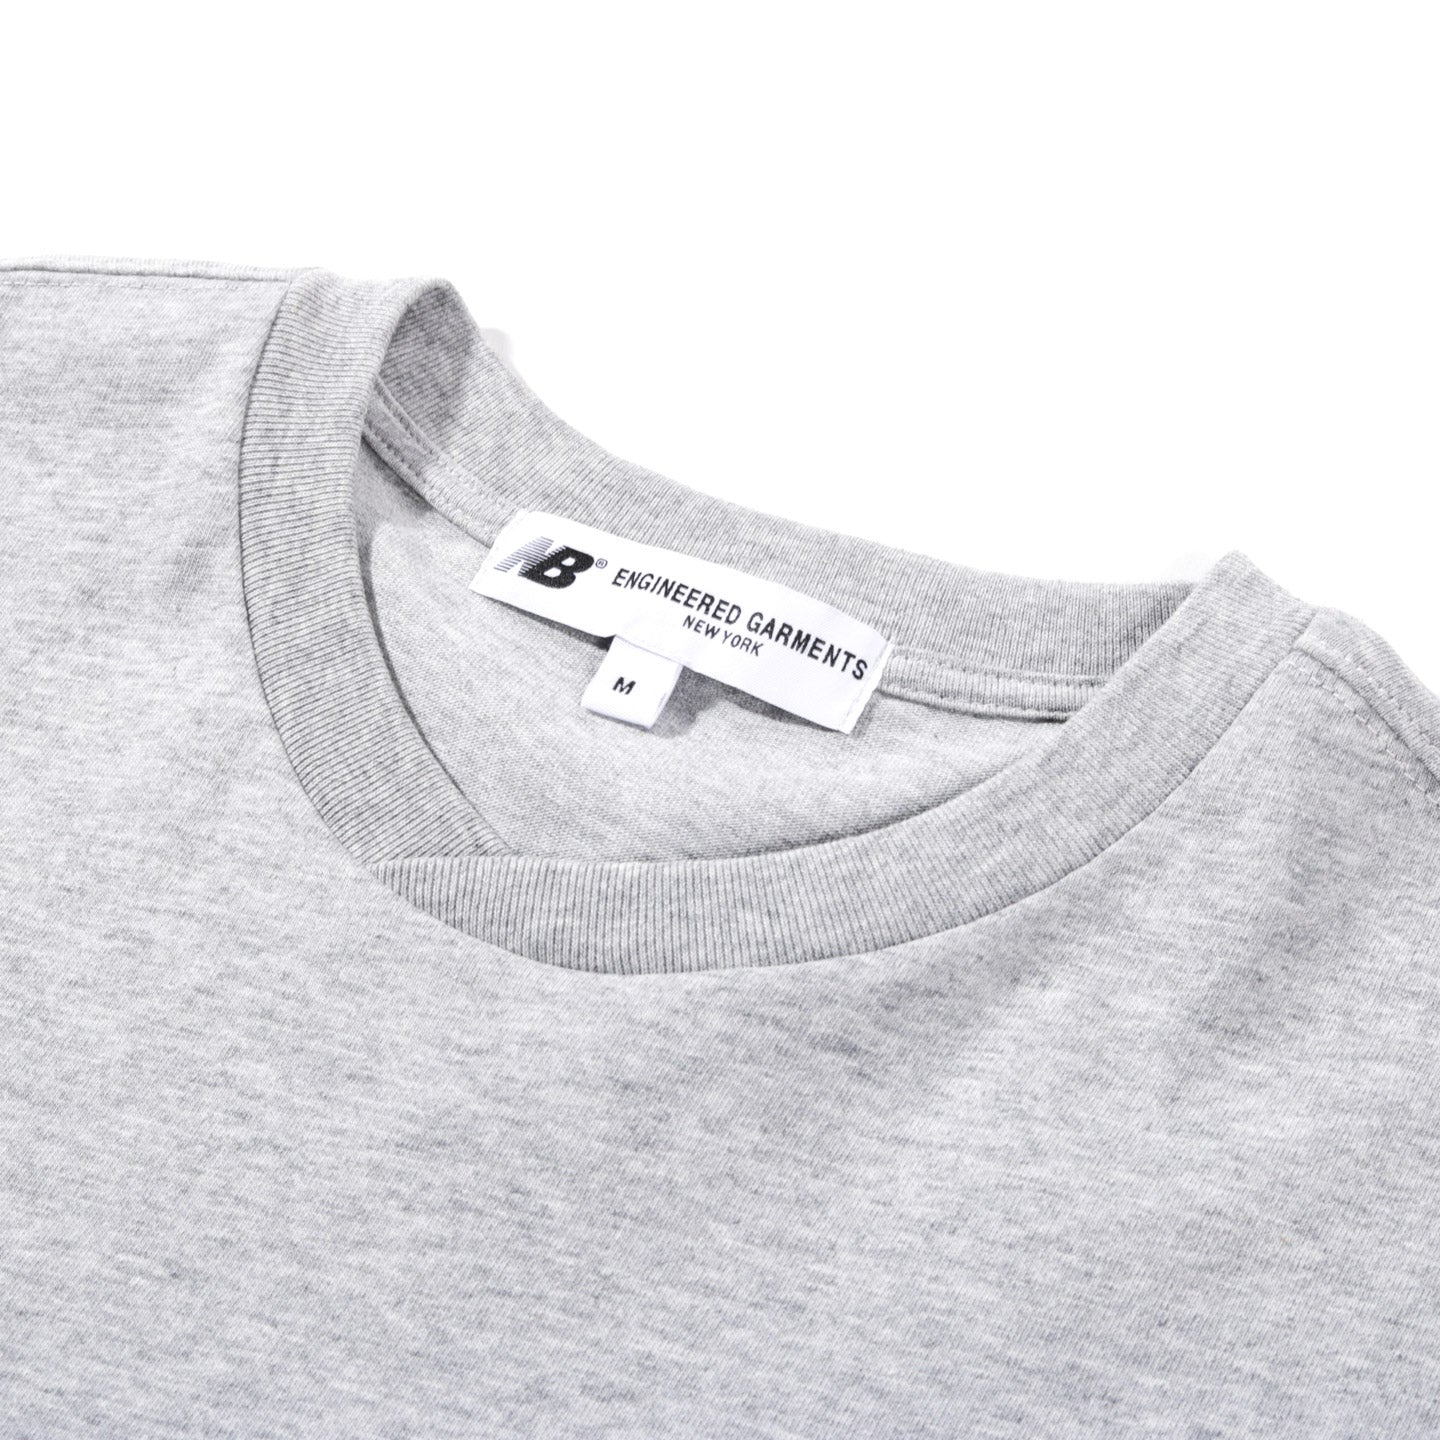 NEW BALANCE ENGINEERED GARMENTS CROSS T-SHIRT GREY